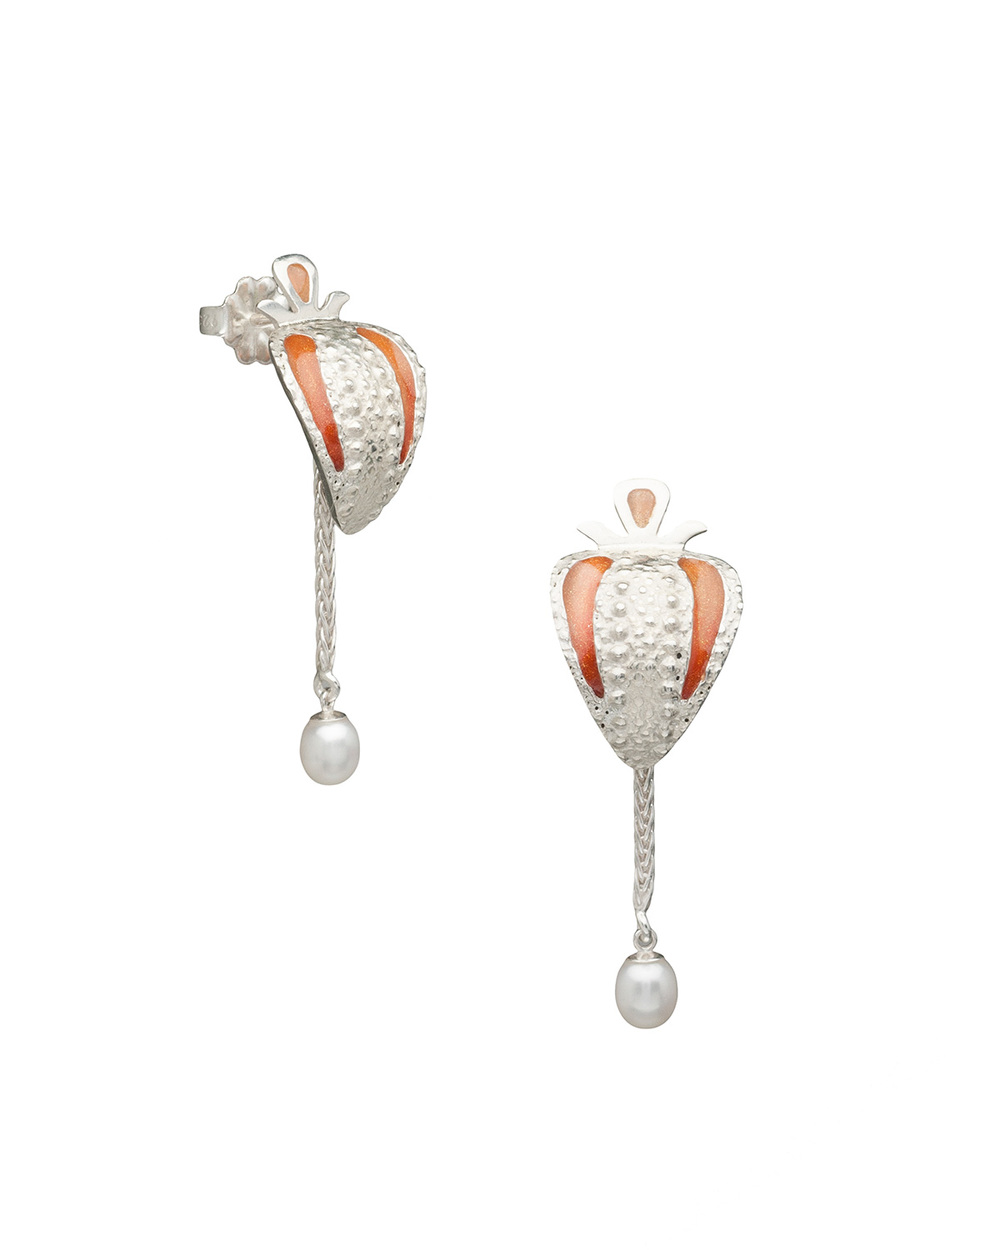 2015-10-Mary-Lynn-Podiluk-Argot-Earrings-P103a.jpg